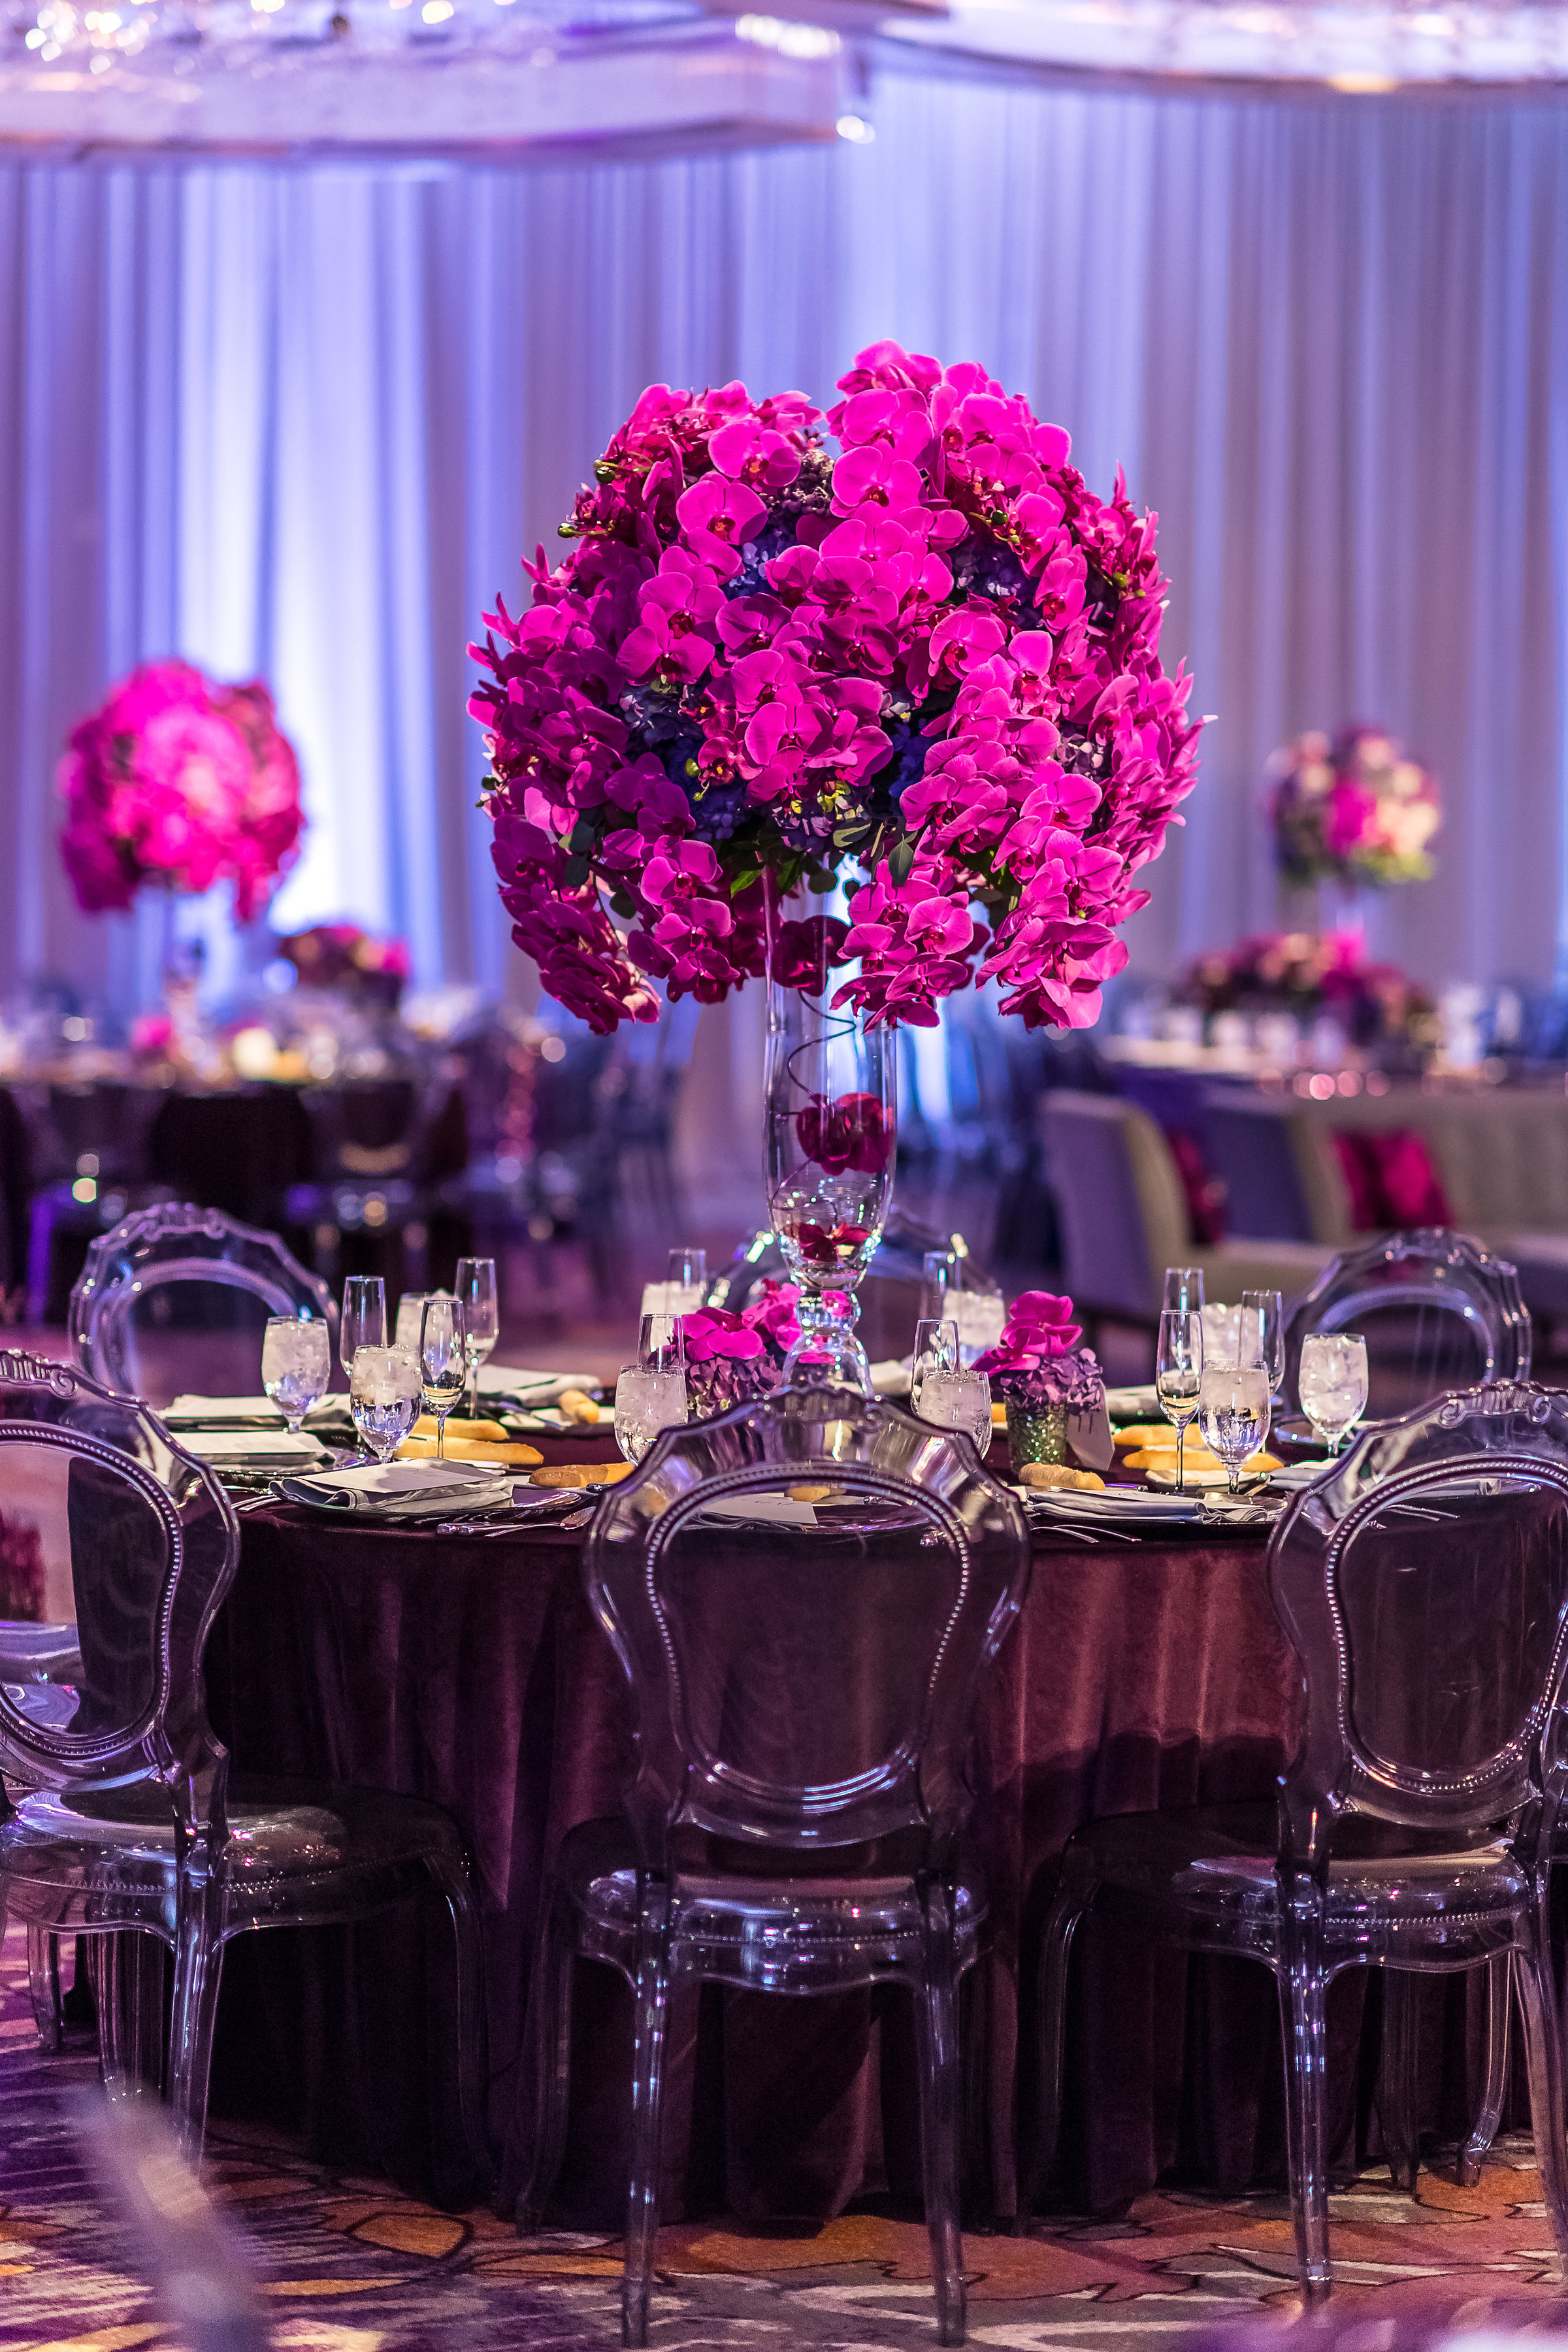 Oh so luxe! Fullo orchid centerpieces.Wedding Planner: Andrea Eppolito Events    Photography  Brian Leahy    Videography  HOO Films    Venue & Catering: Mandarin Oriental / Waldorf Astoria   Floral & Decor: Destinations by Design    Lighting: LED Unplugged    Music: DJ Breeze II    Hair & Make Up: Amelia C & Co    Invitations by  Bliss & Bone    Menu and Escort Cards by  Meldeen